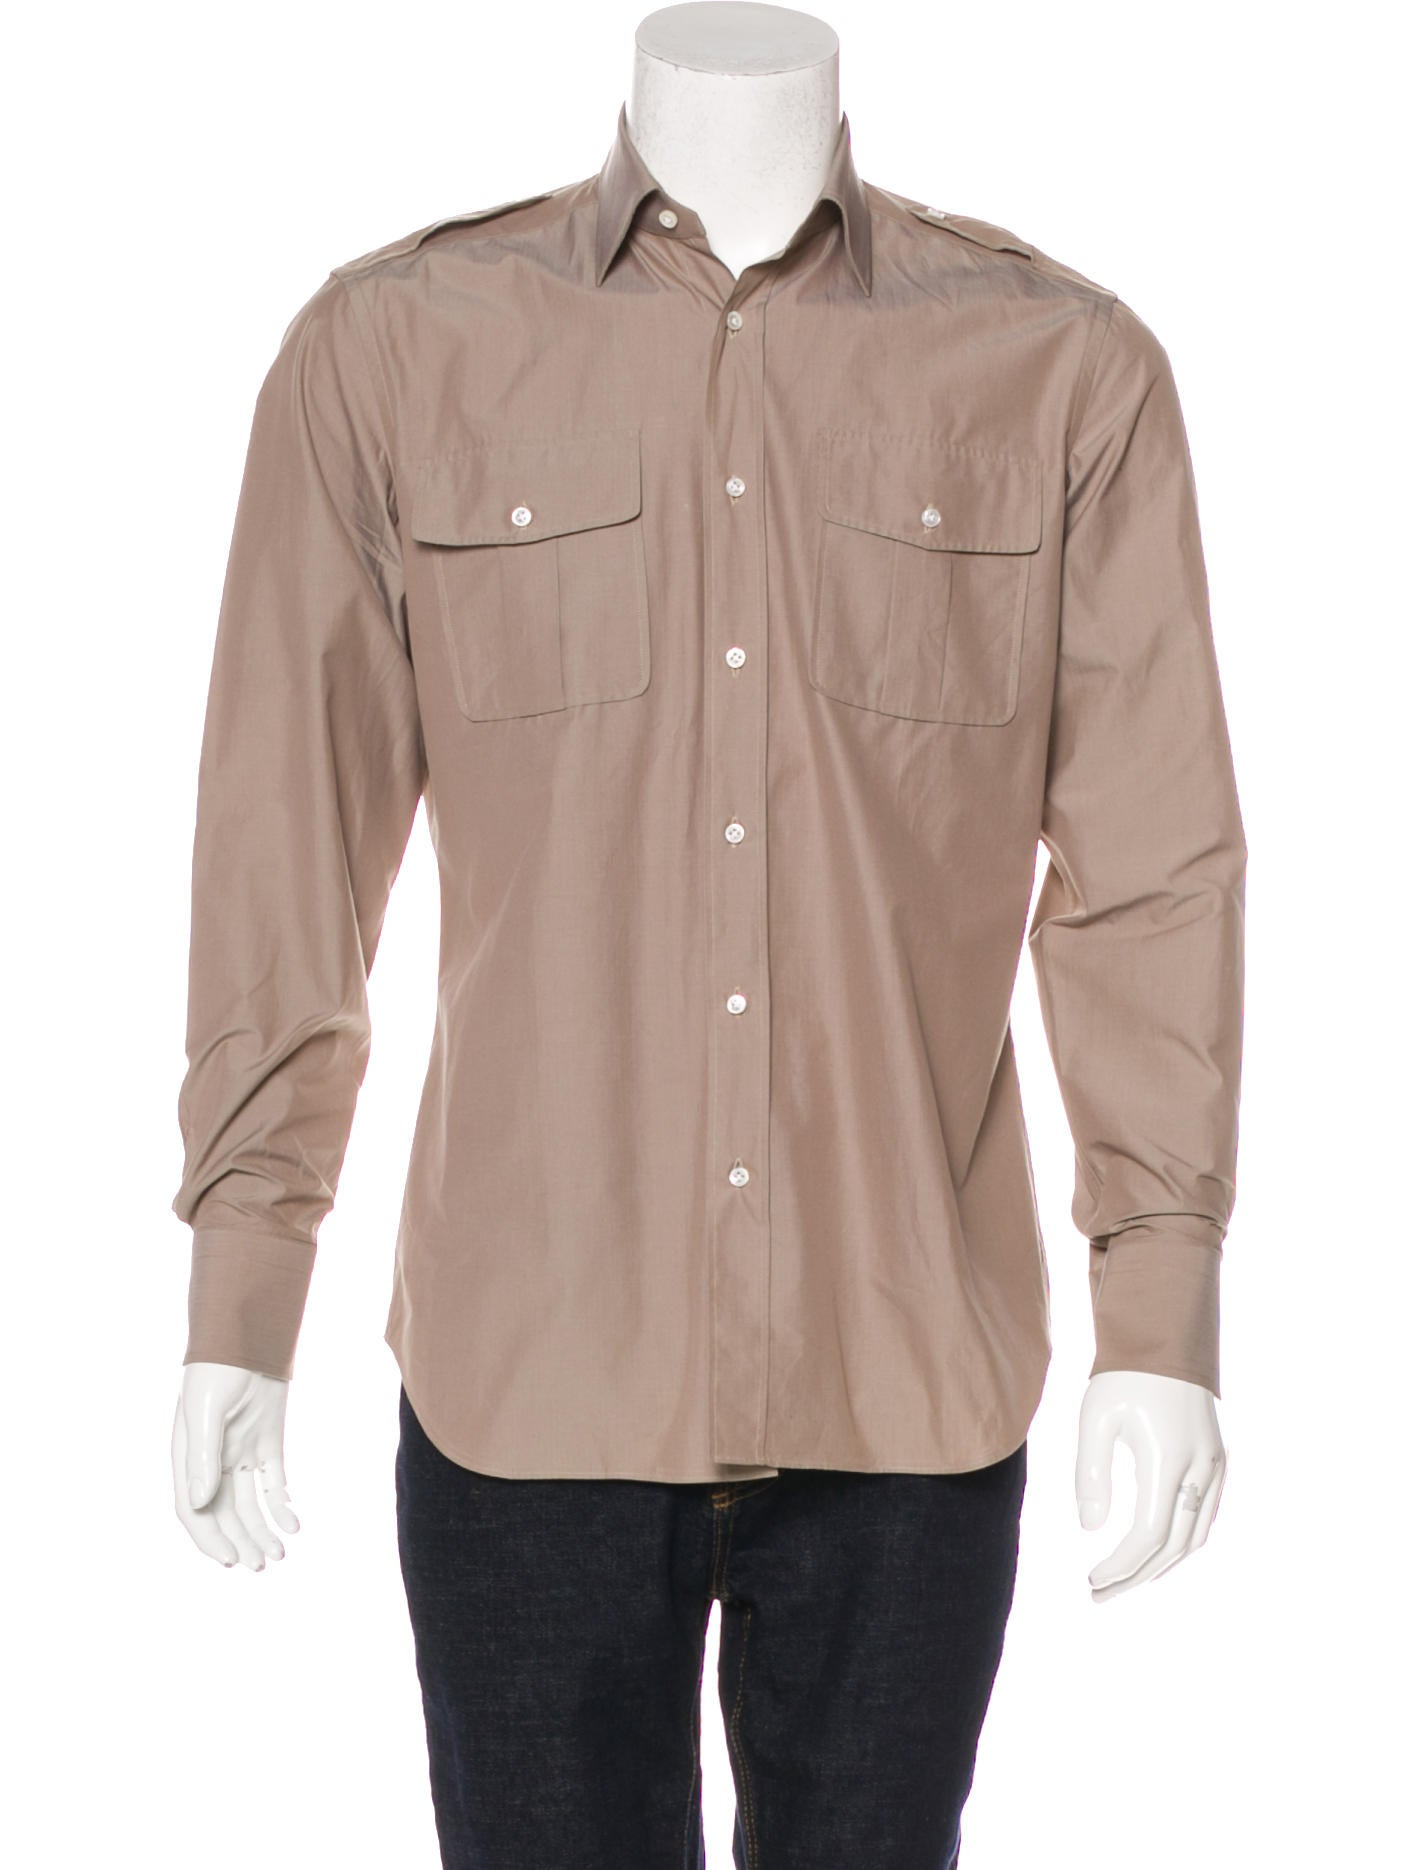 Ports 1961 woven button up shirt w tags clothing Woven t shirt tags